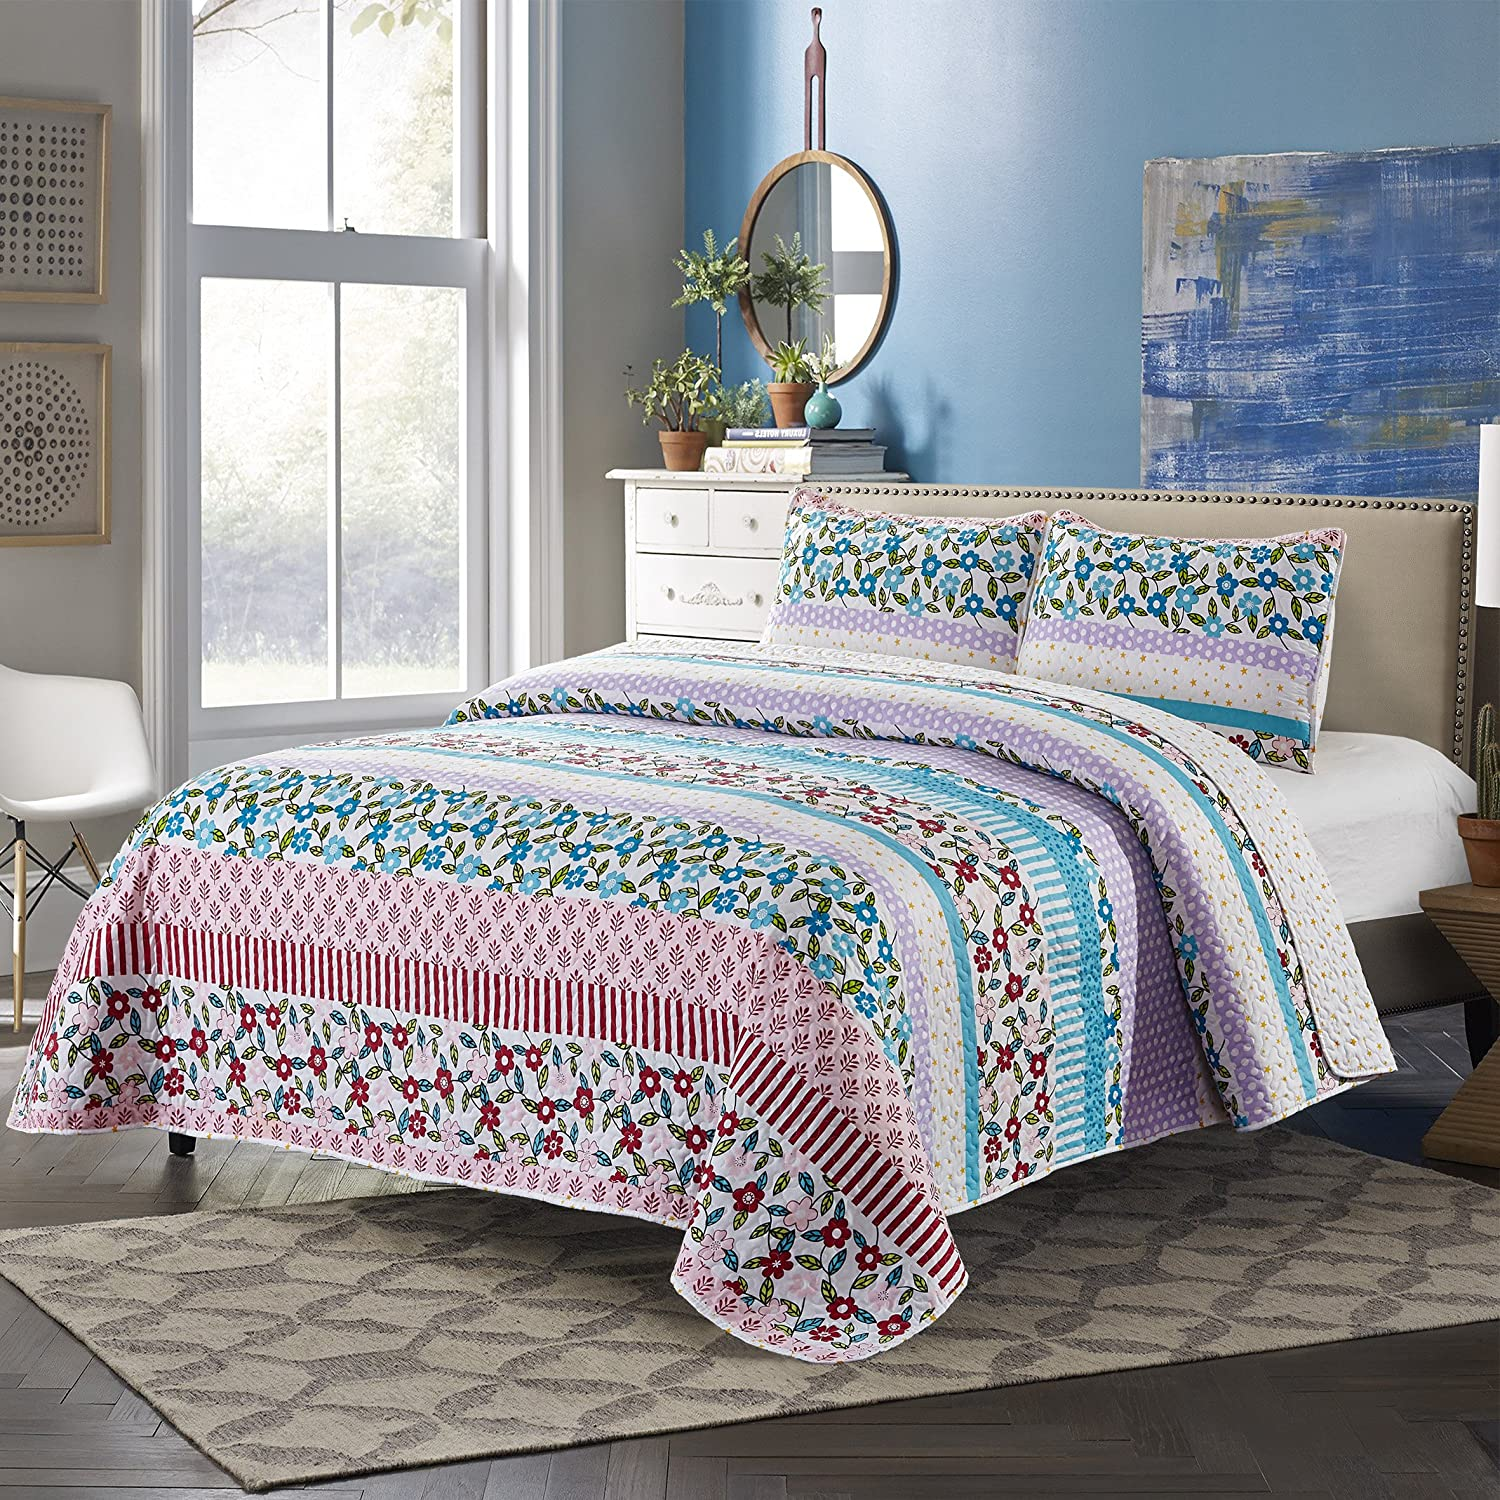 SLPR Summer Festival 3-Piece Lightweight Printed Quilt Set (Queen